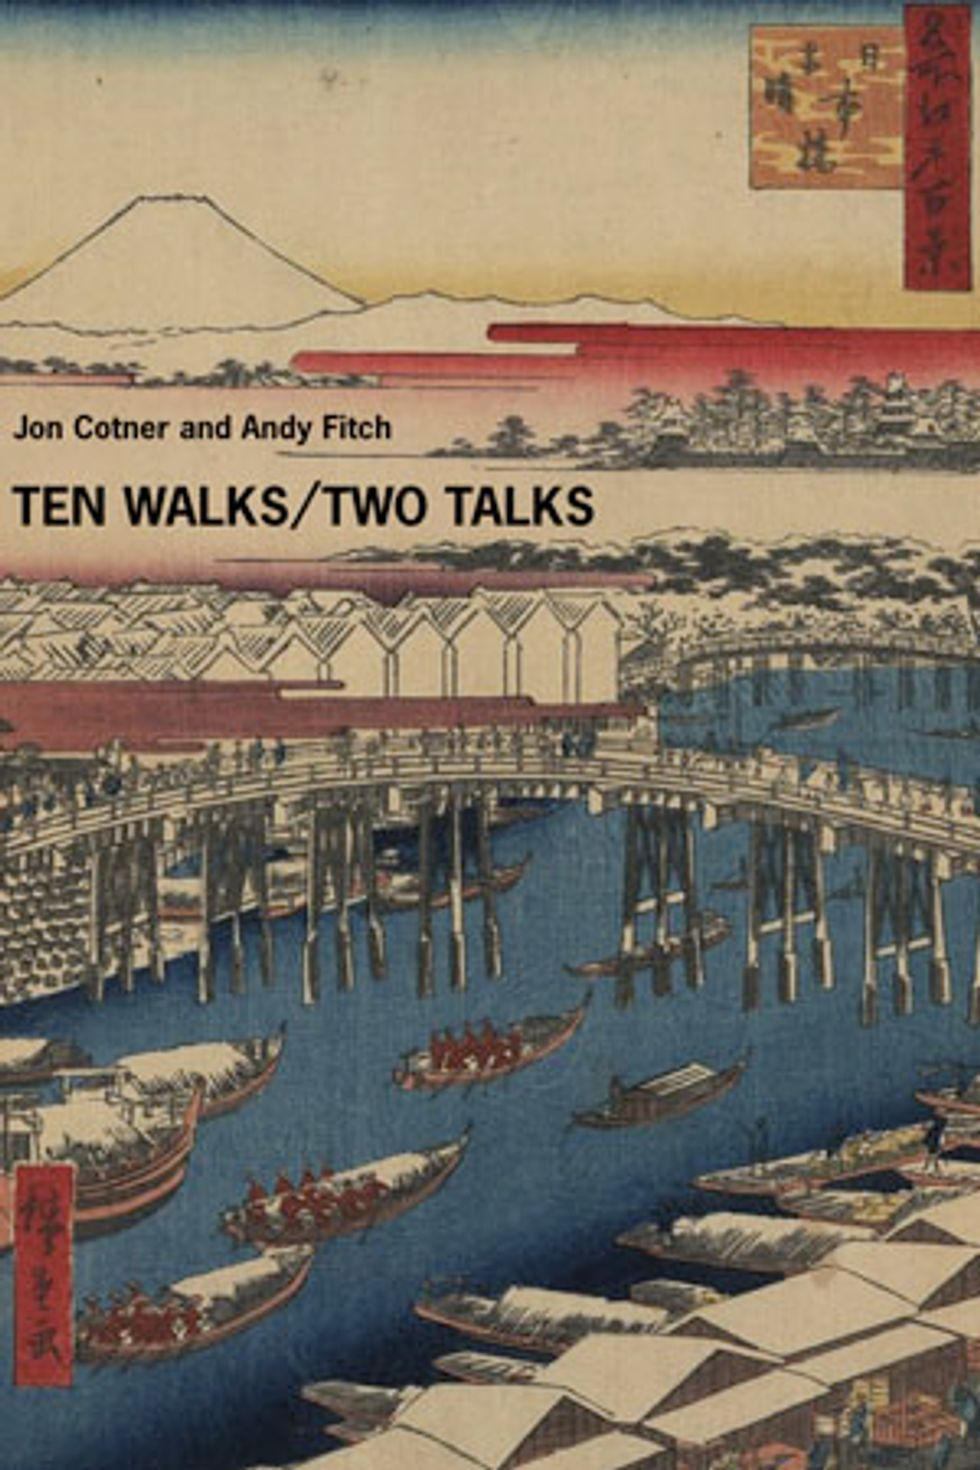 Andy Fitch and Jon Cotner's Ten Walks/Two Talks Puts NYC Under A Microscope